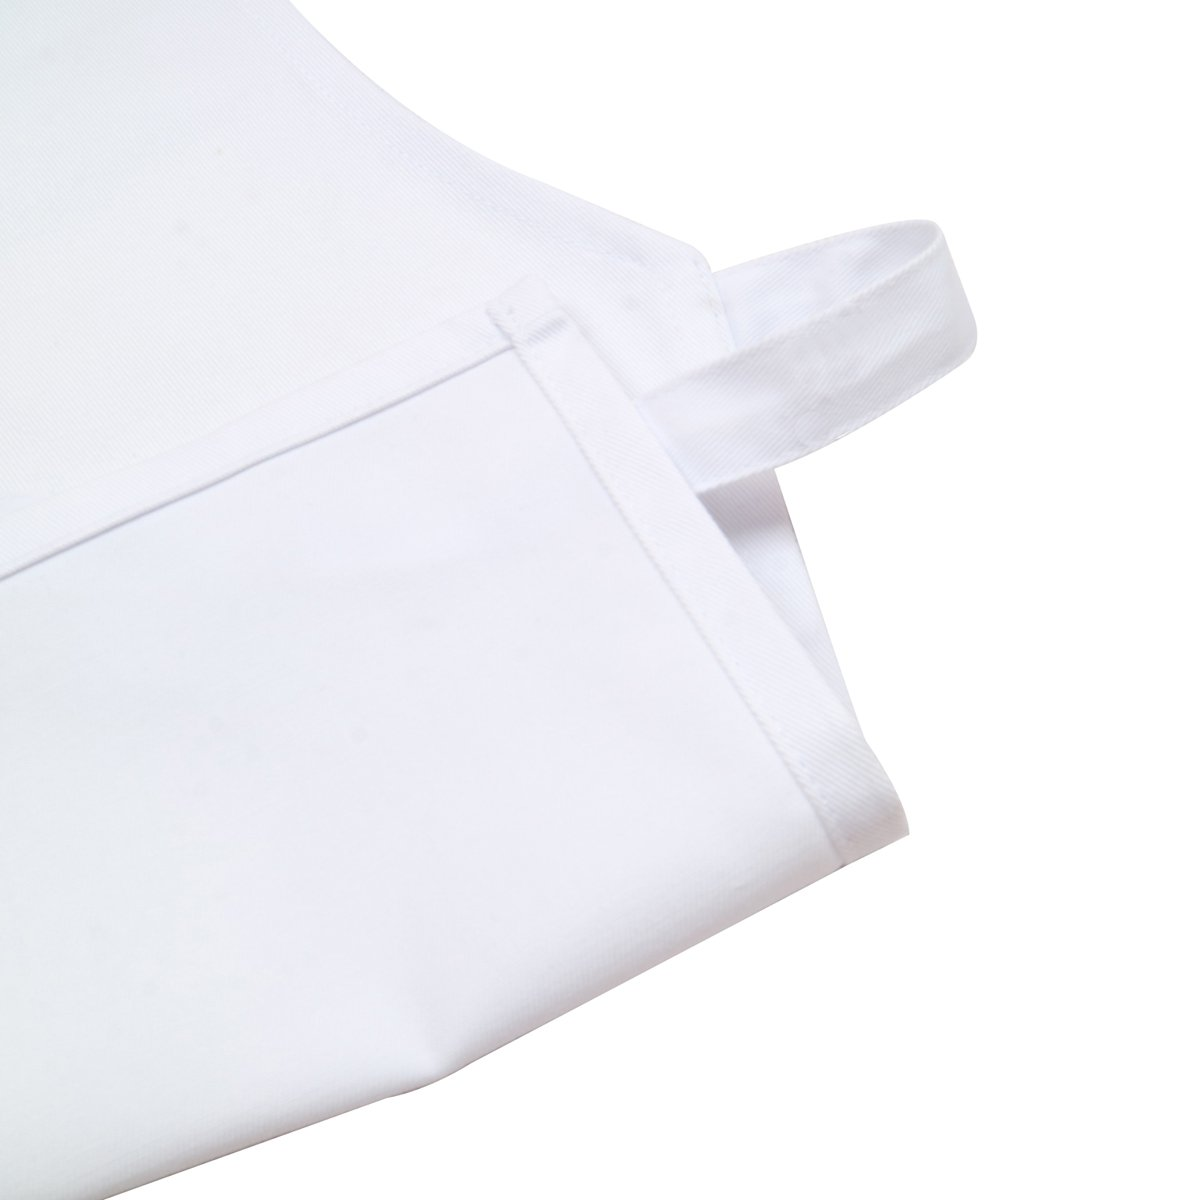 3 pc-White Adult chef apron for cooking,baking,painting or decorating party